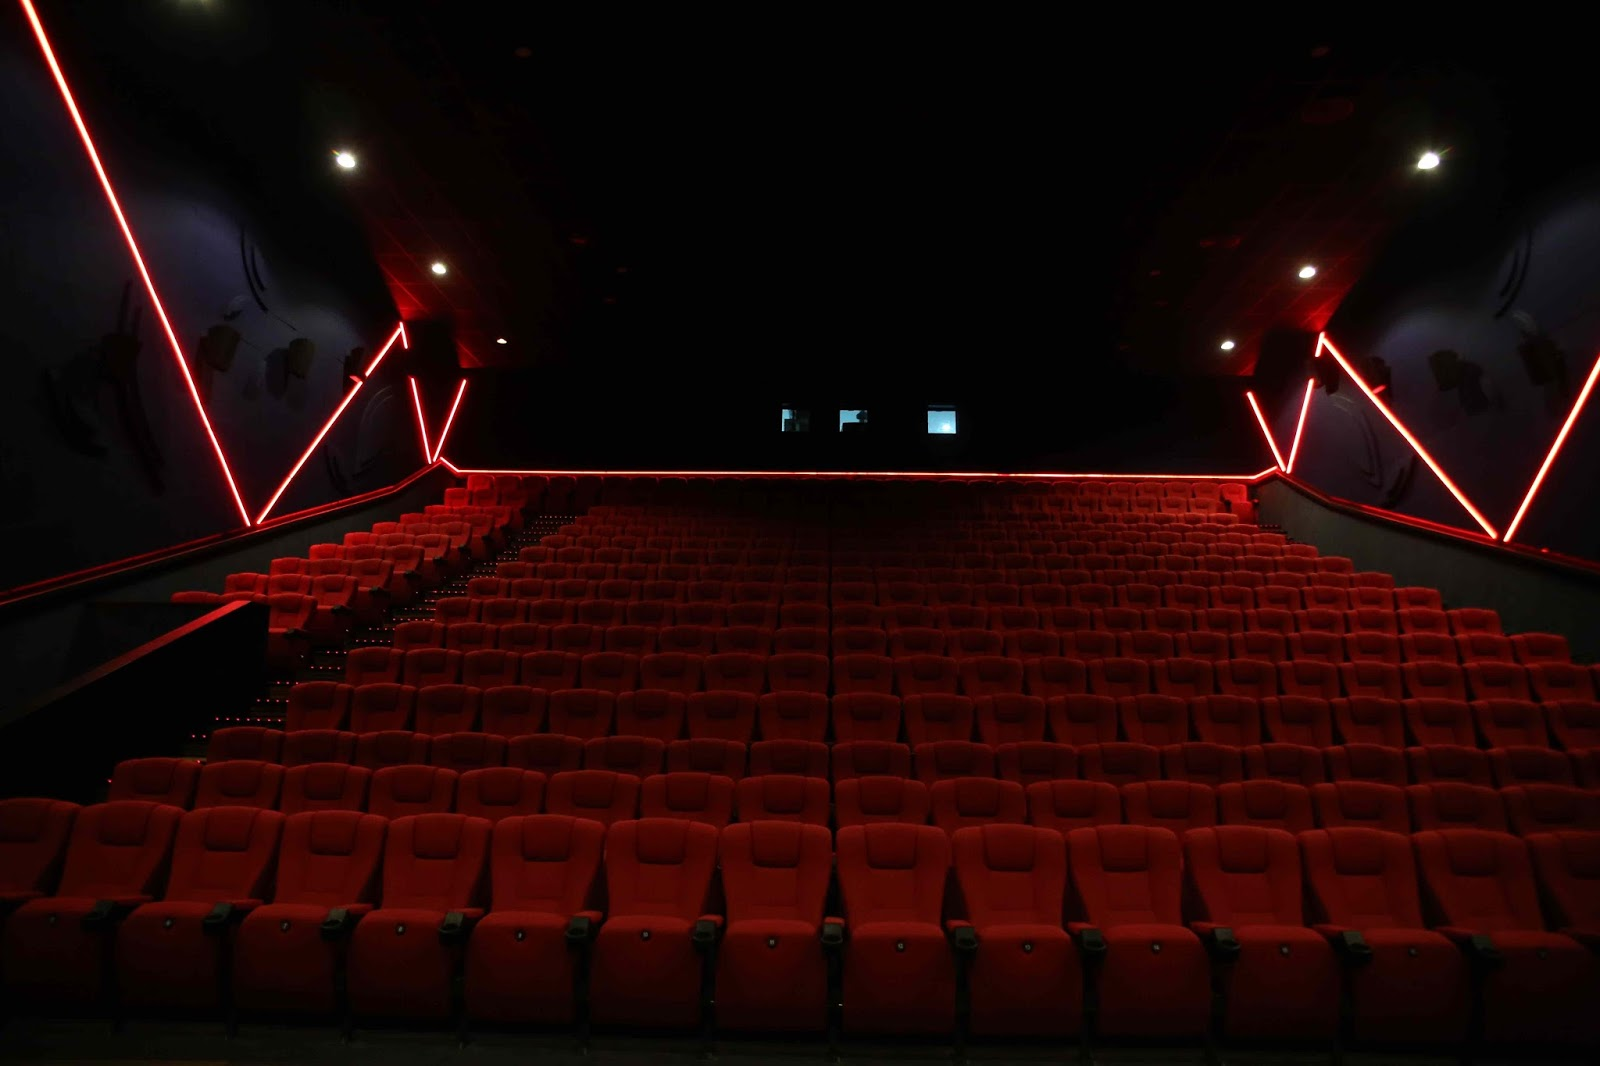 imax cinema - things to do in Lahore